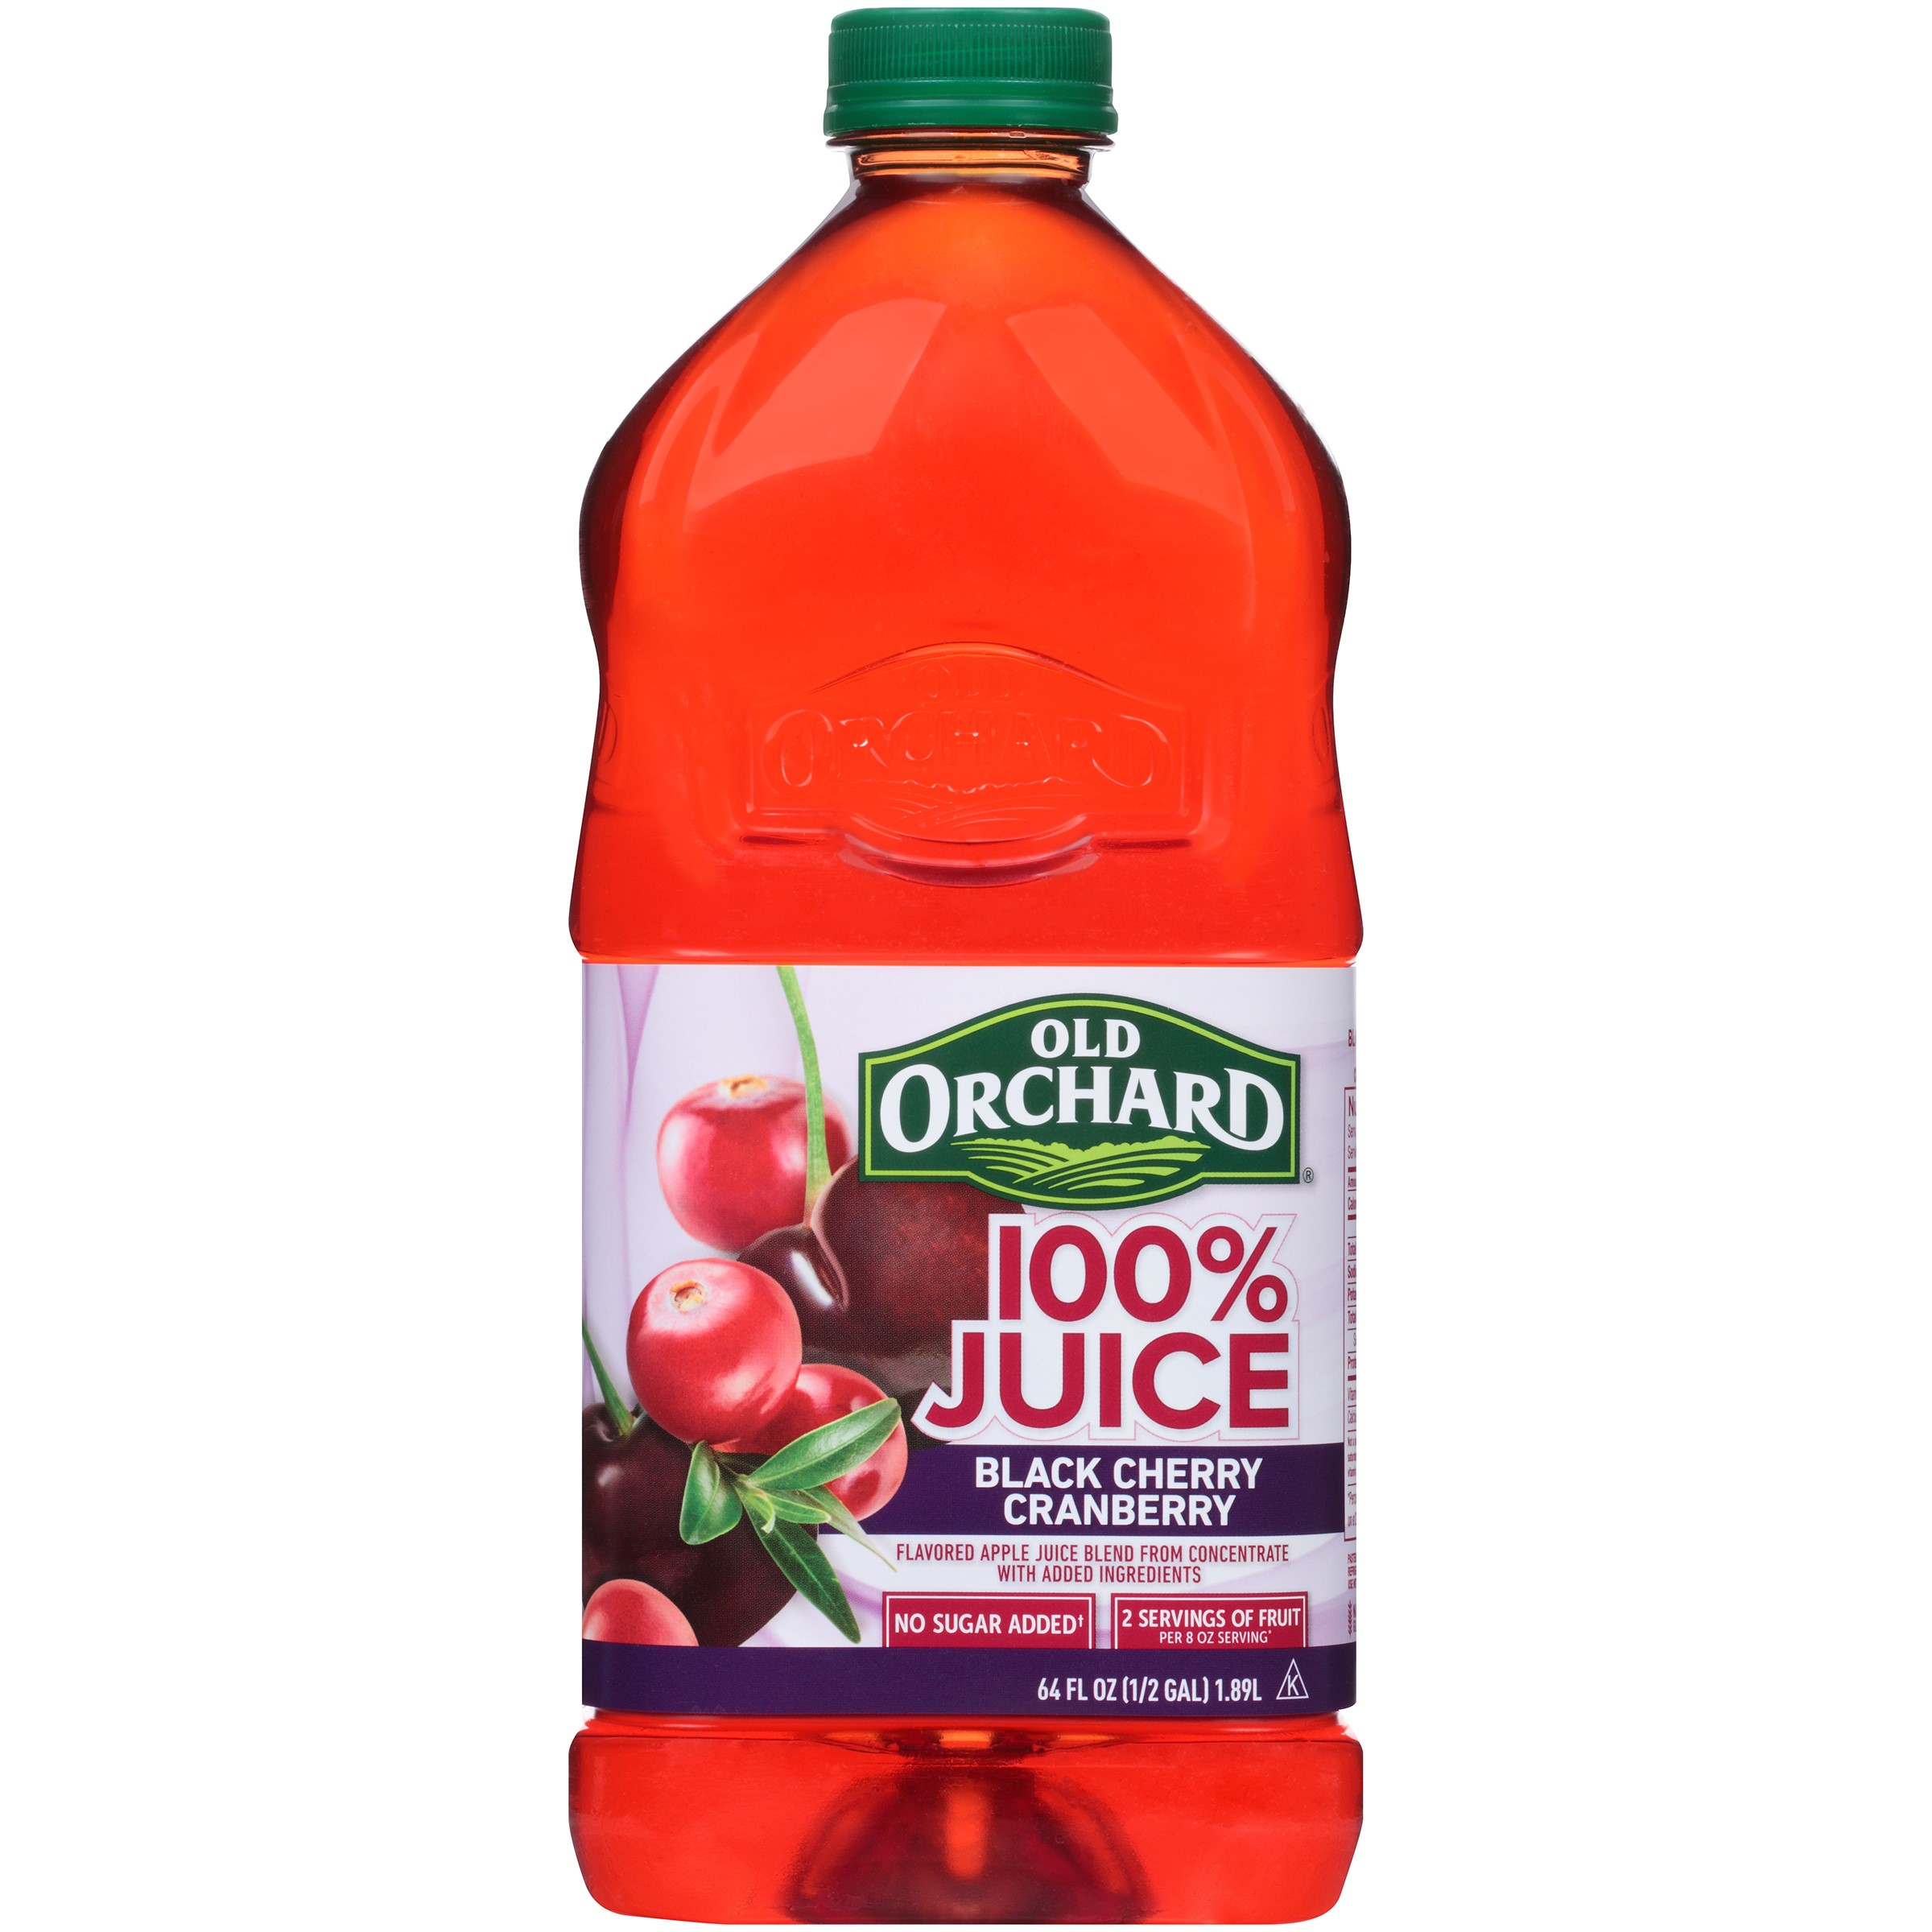 Old Orchard 100% Juice, Black Cherry Cranberry, 64 Fl Oz